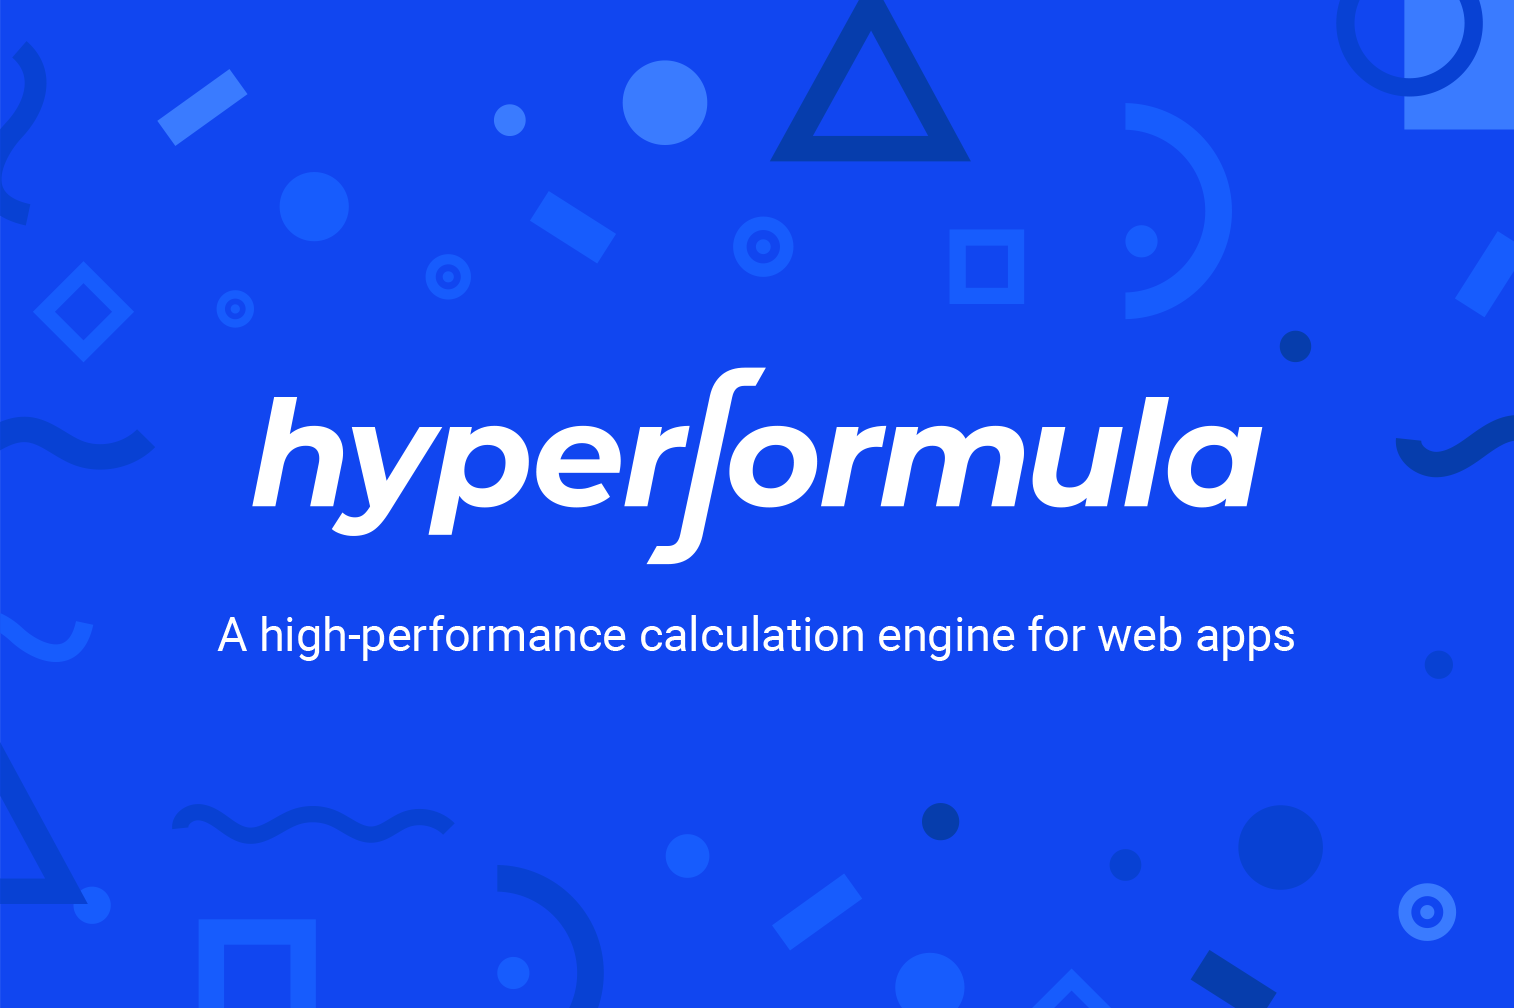 HyperFormula - a high-performance calculation engine for web apps